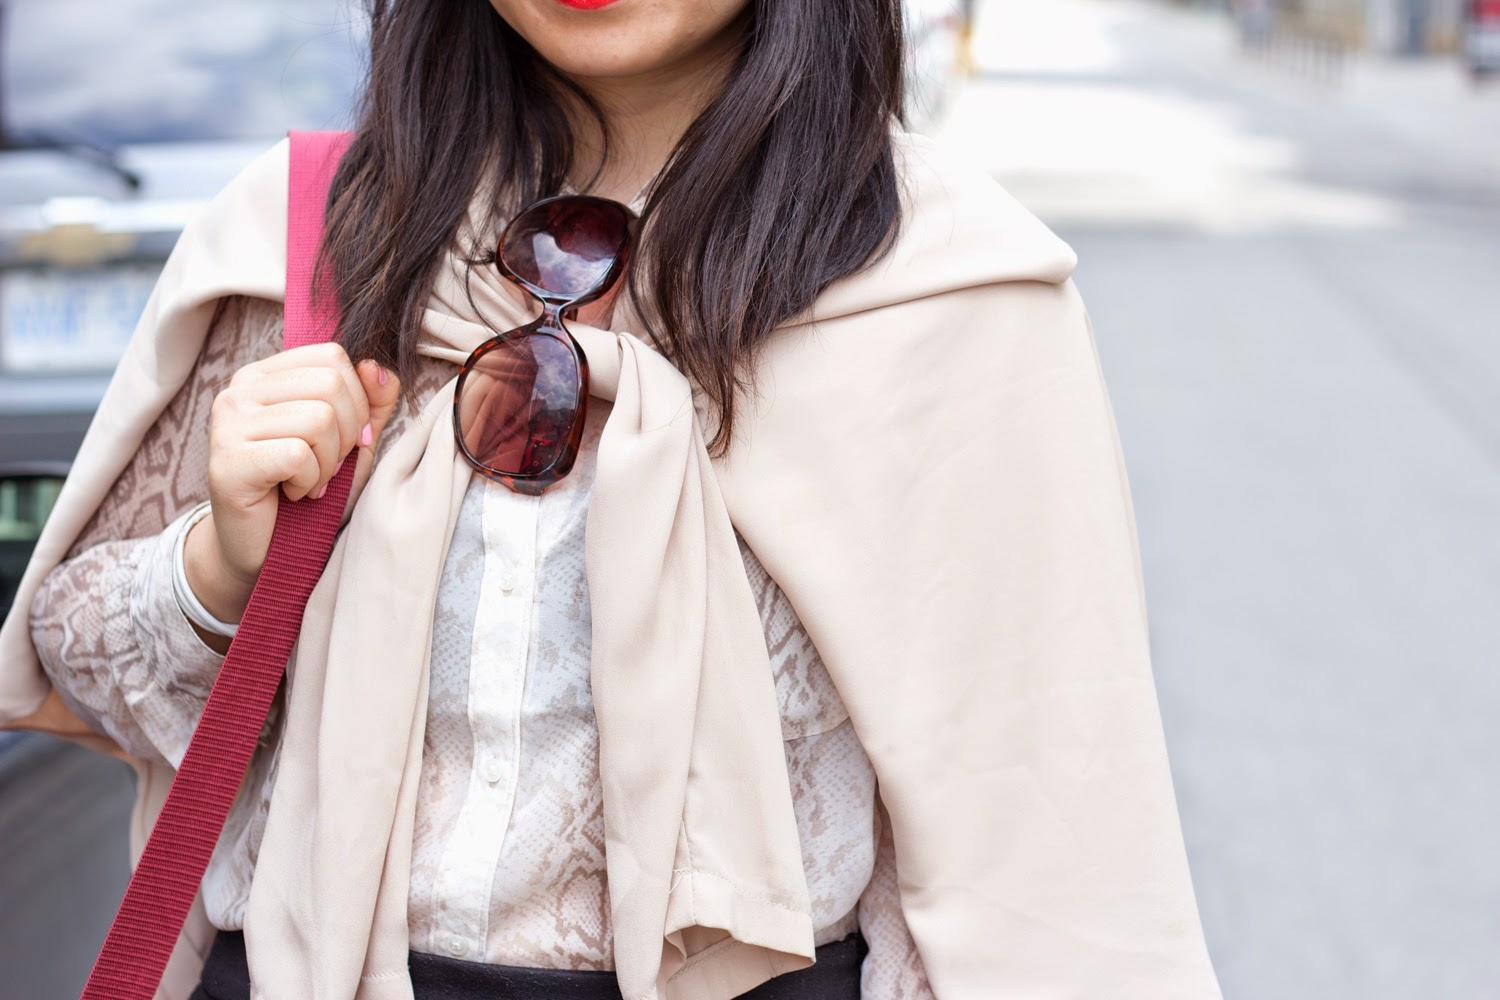 music-festival-look, fedora-hat, chiffon-trench-coat, burgundy-cross-body-bag